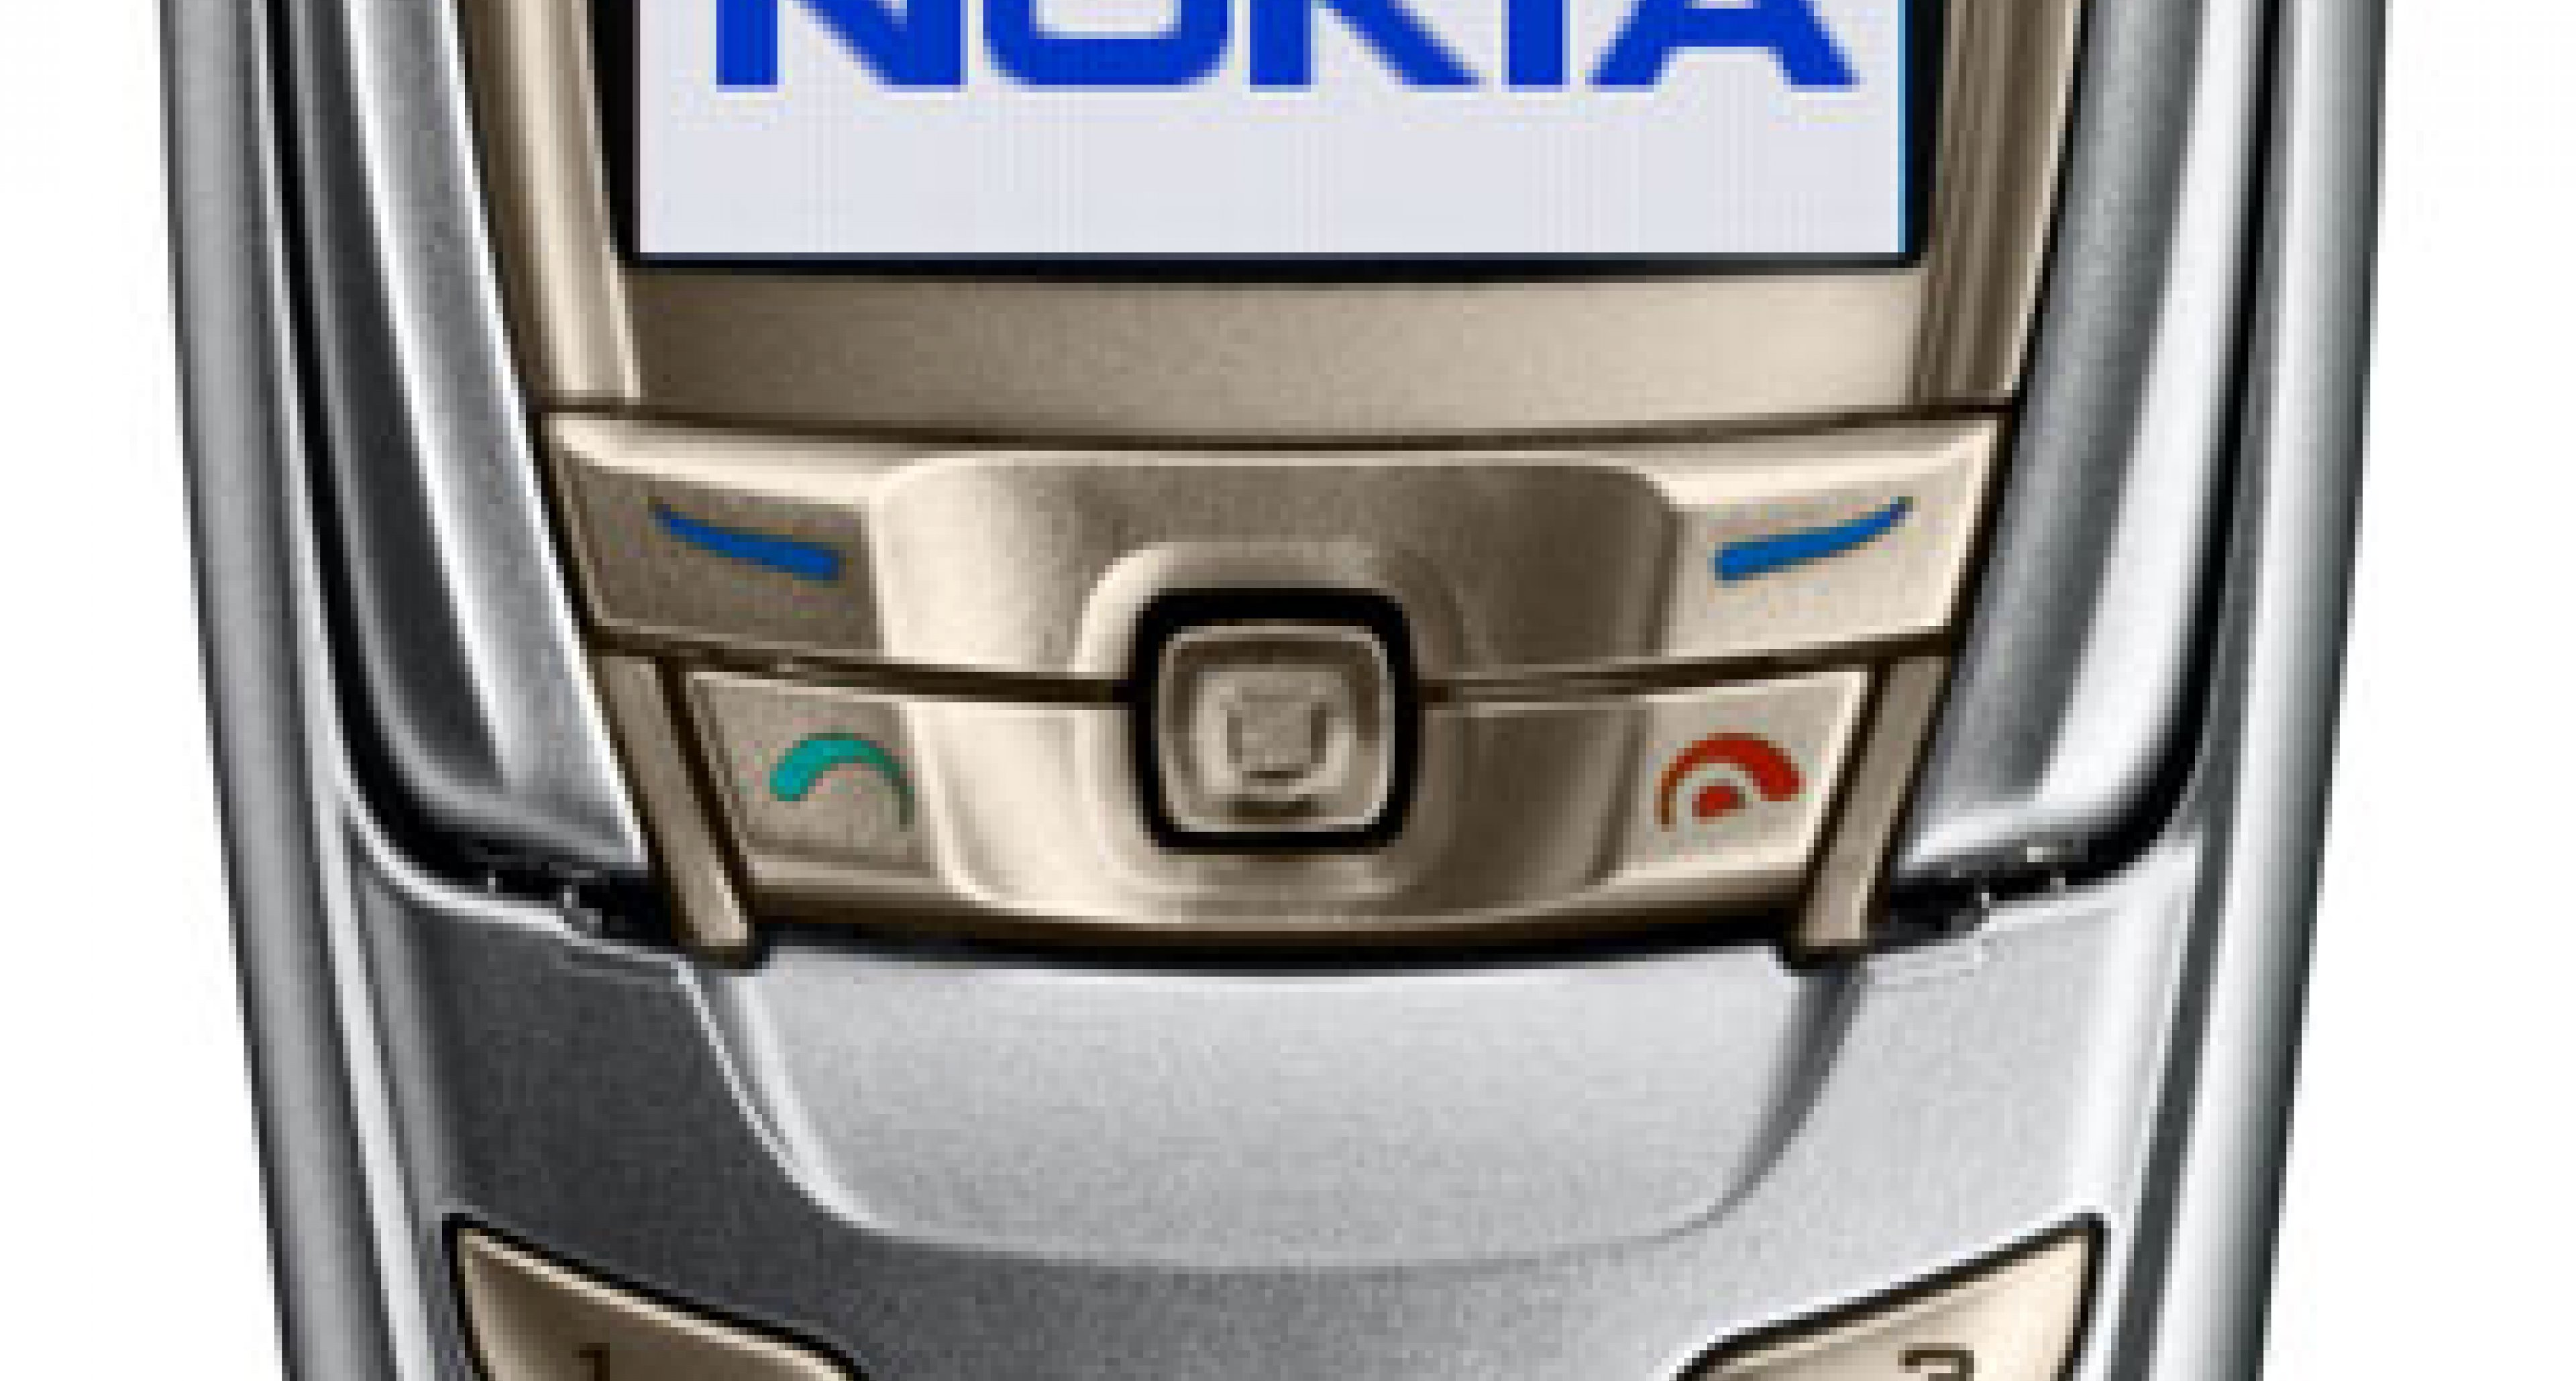 Nokia 610: Connecting Drivers